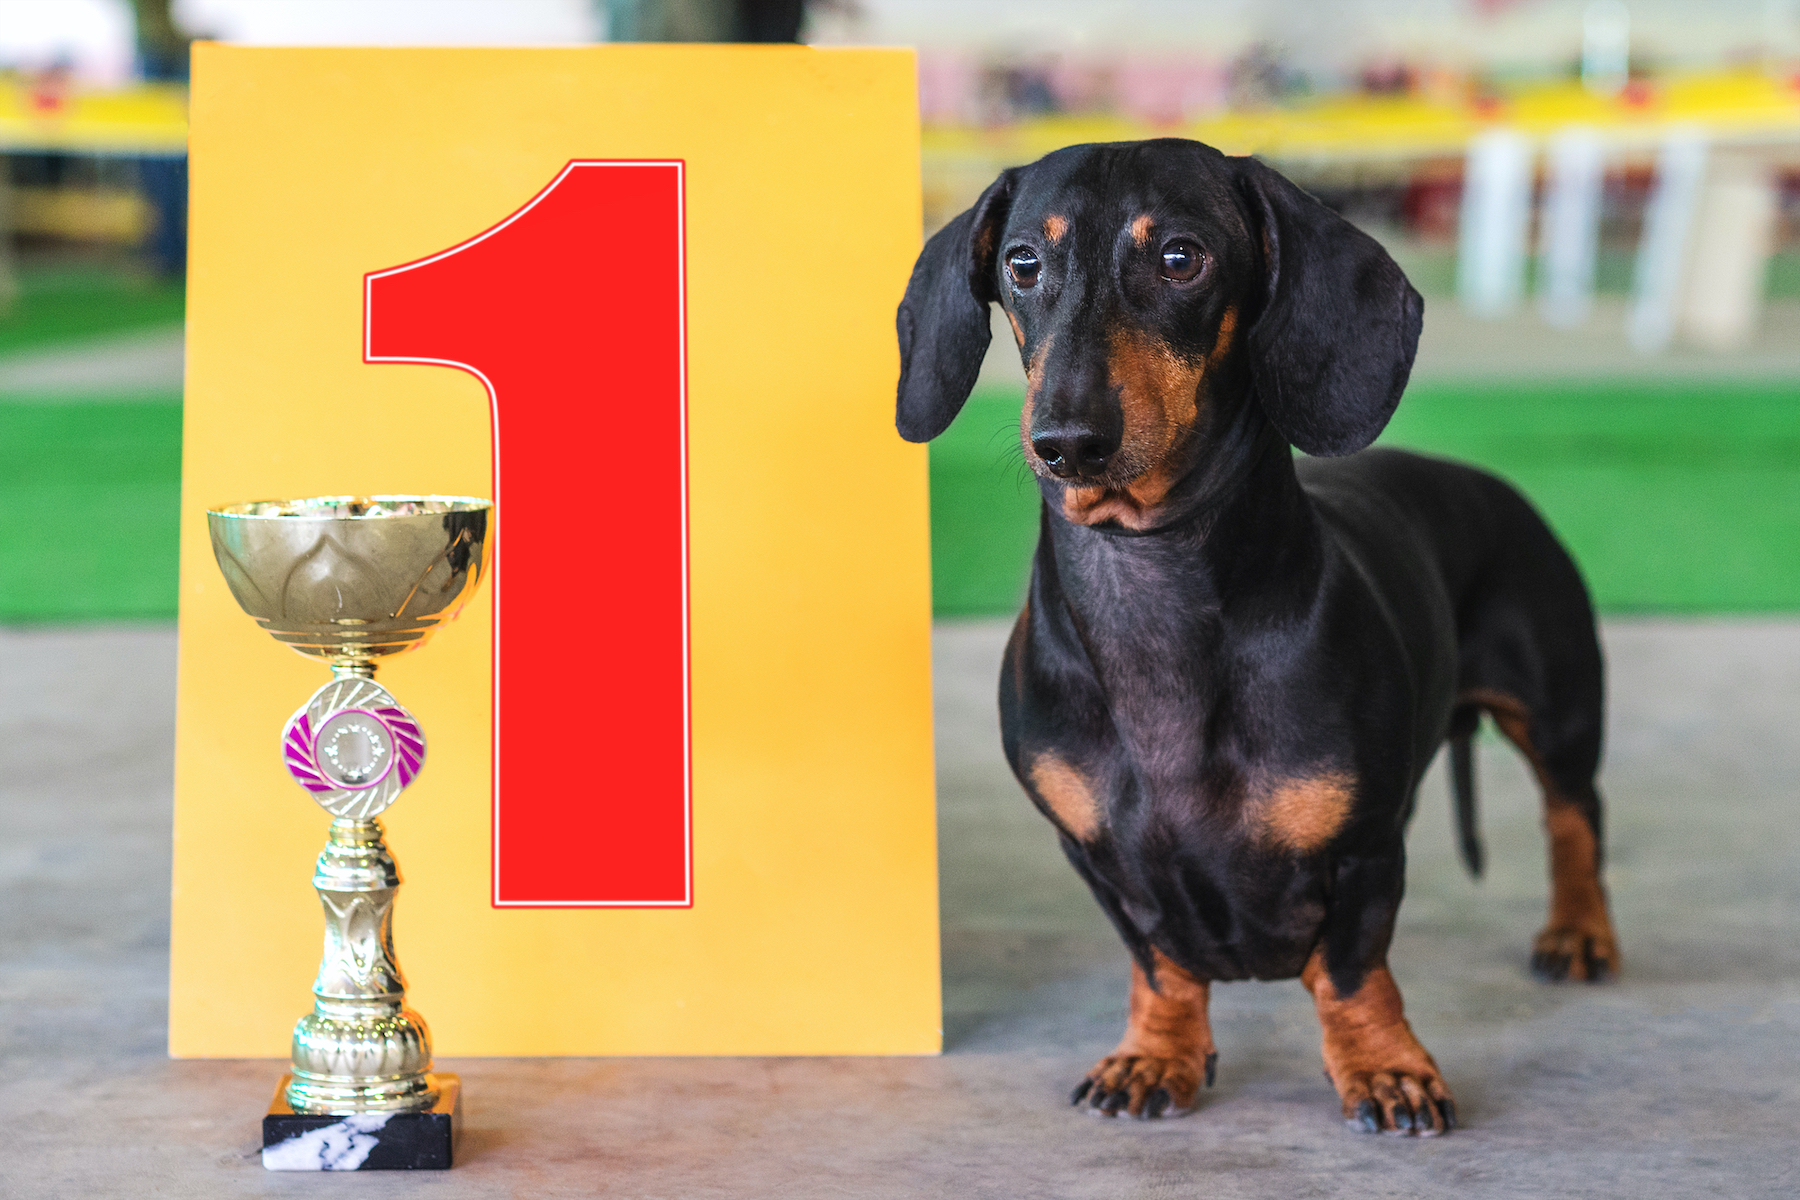 Canva - dog dachshund the winner of the exhibition, stand near the gold cup and the number one sign at an exhibition of dogs